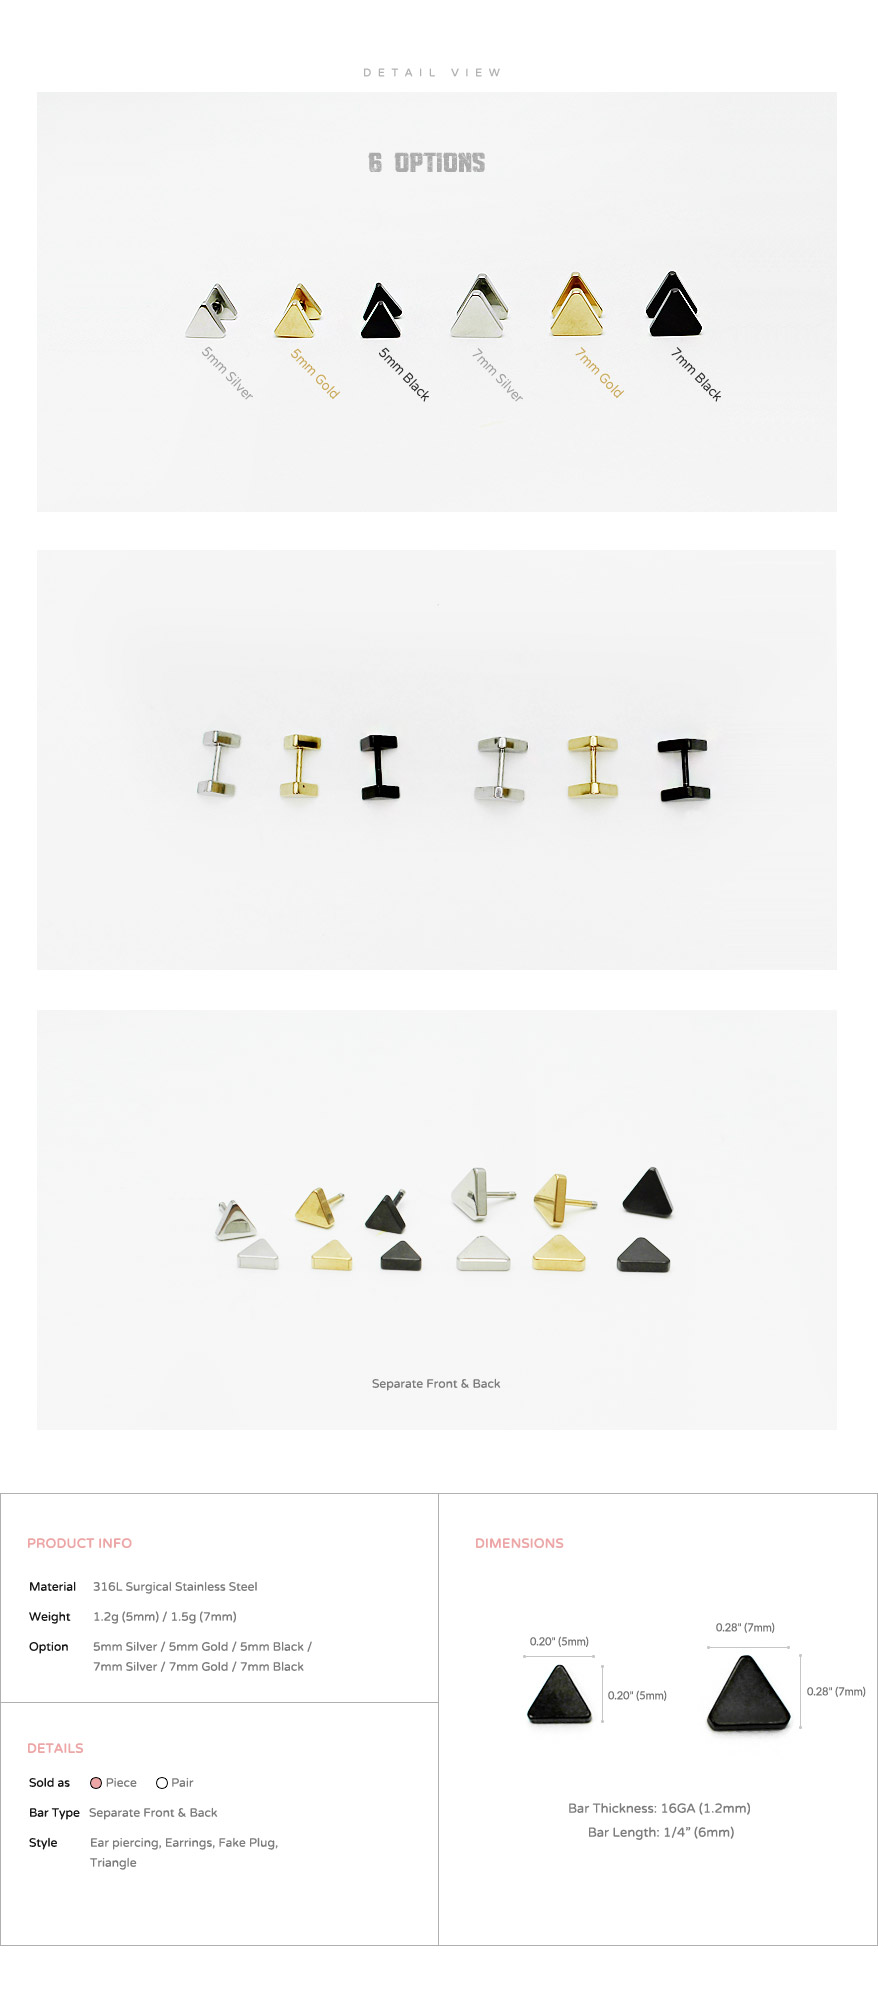 accessories_Koreanstyle_asianstyle_316l_ear_cartilage_piercing_earrings_16g_earstuds_barbell_fake_plug_cheaters_triangle_6